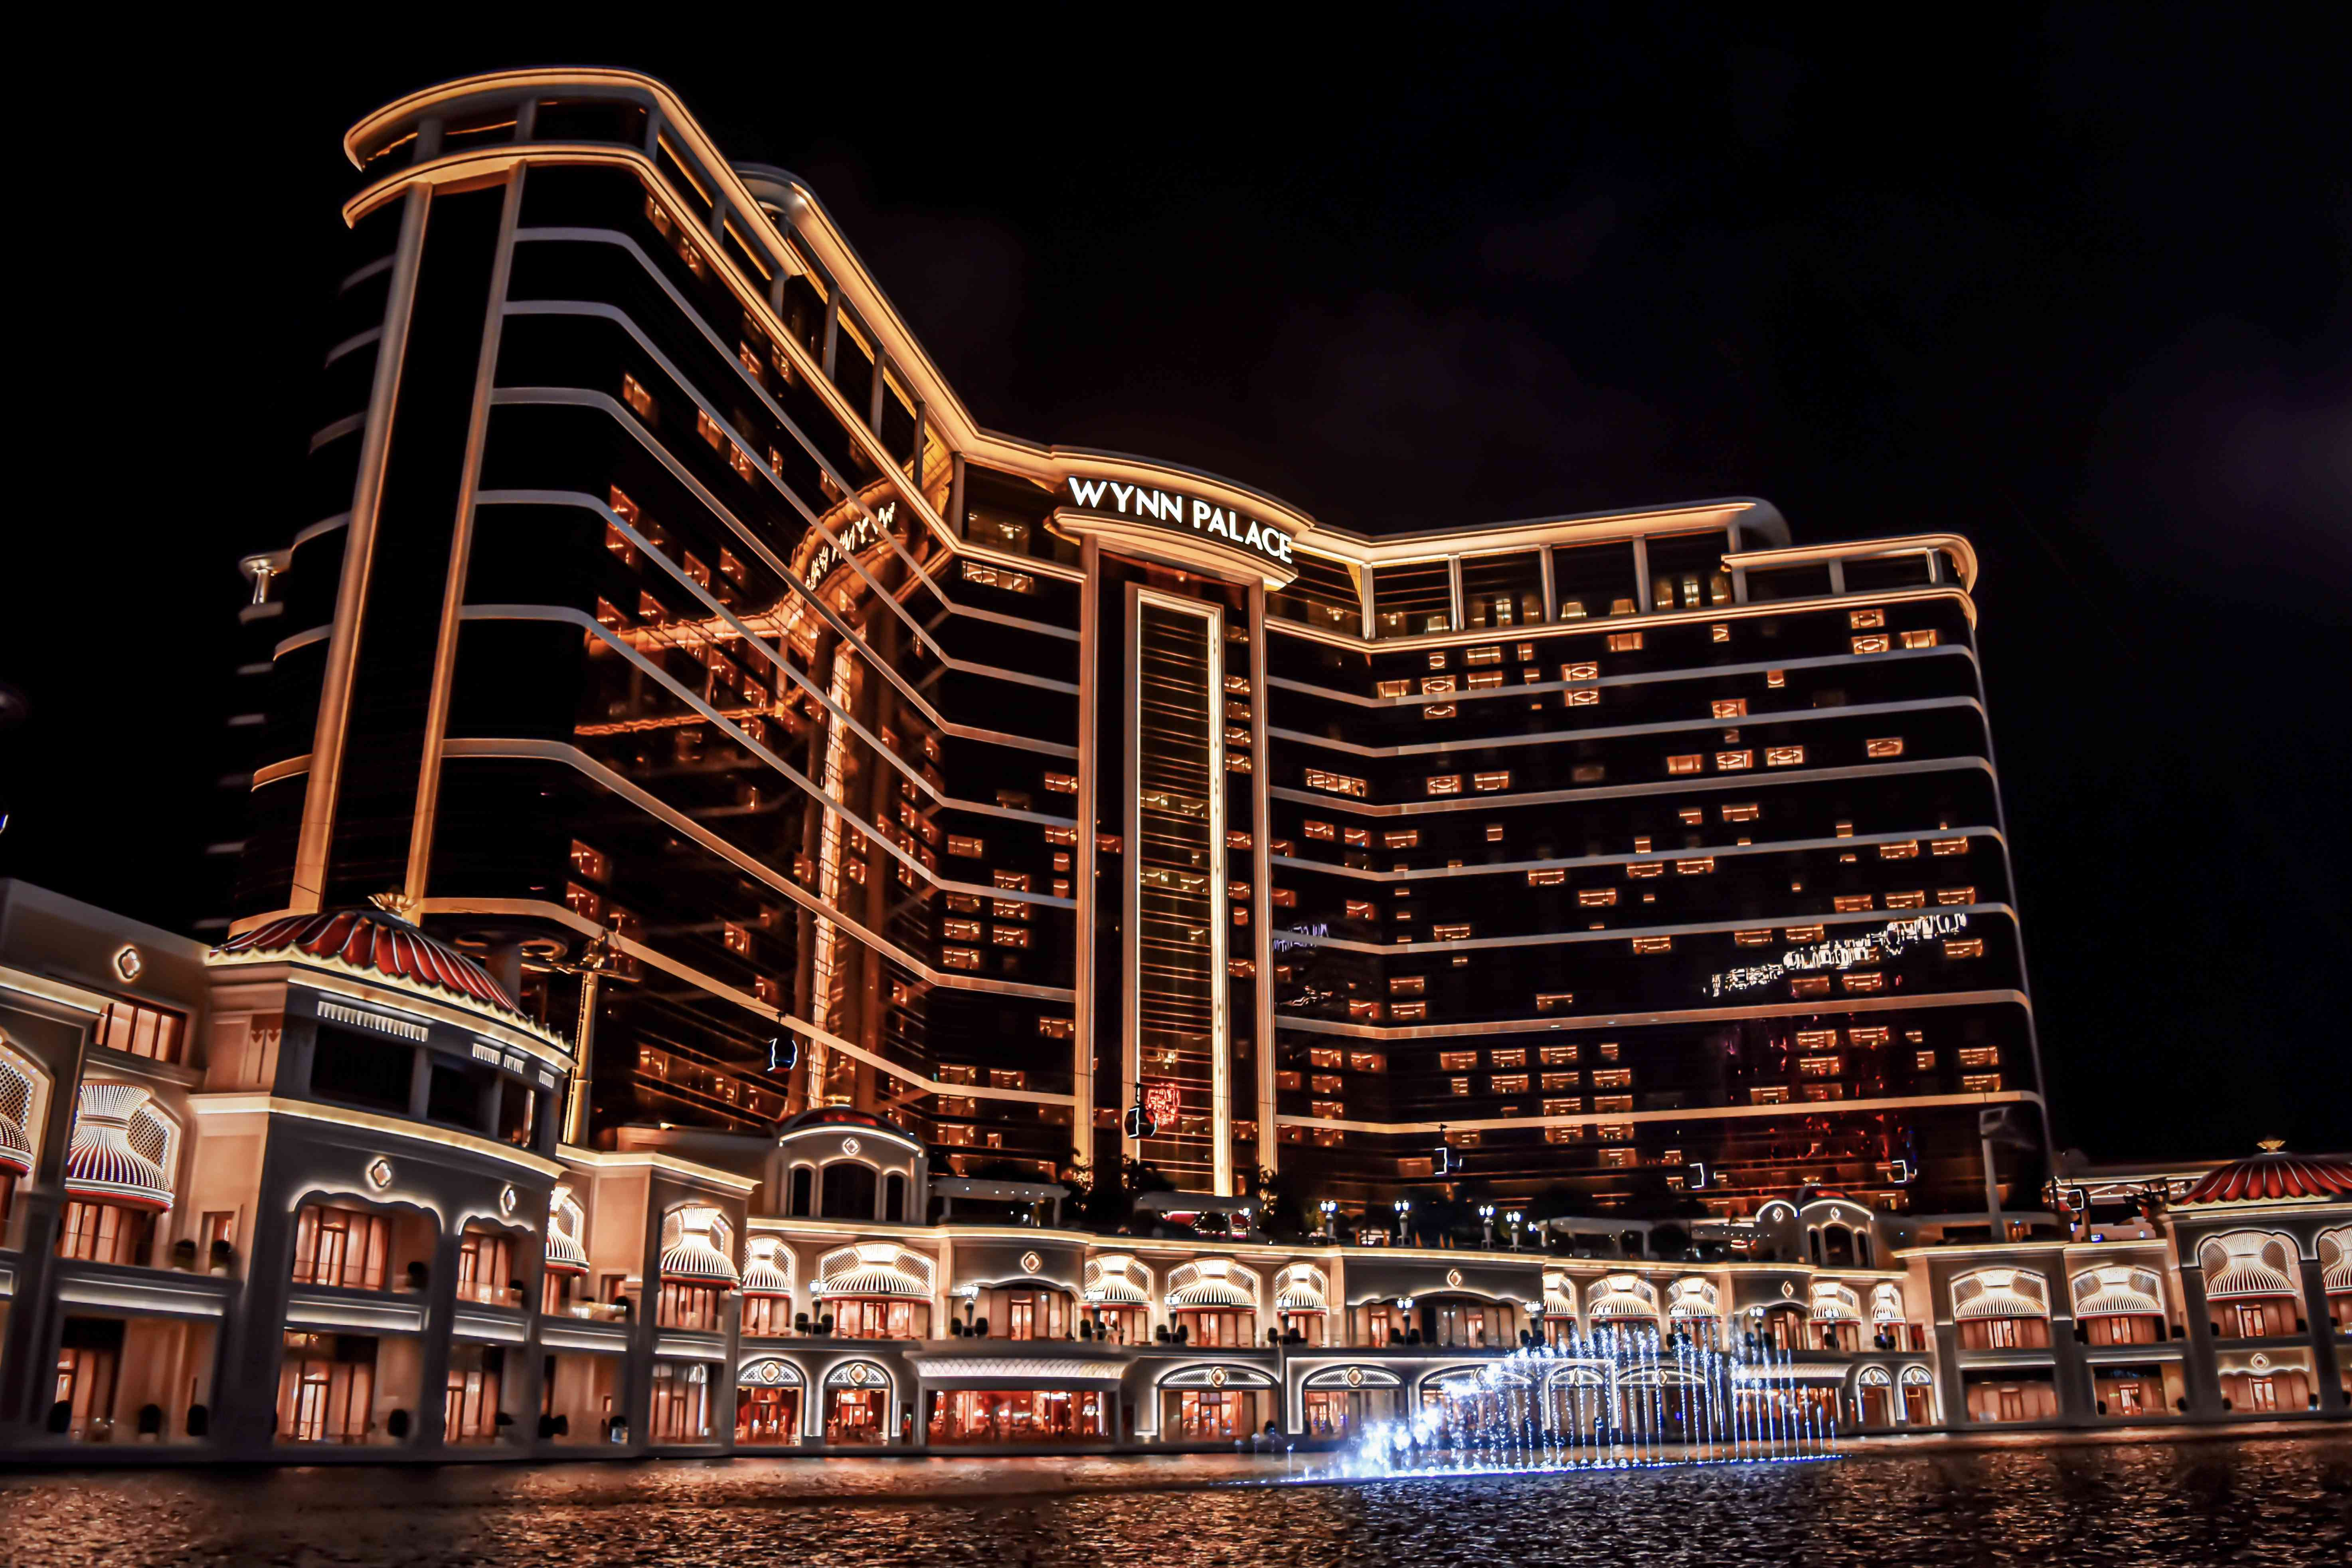 Fountain at night in front of illuminated Wynn Palace in macao